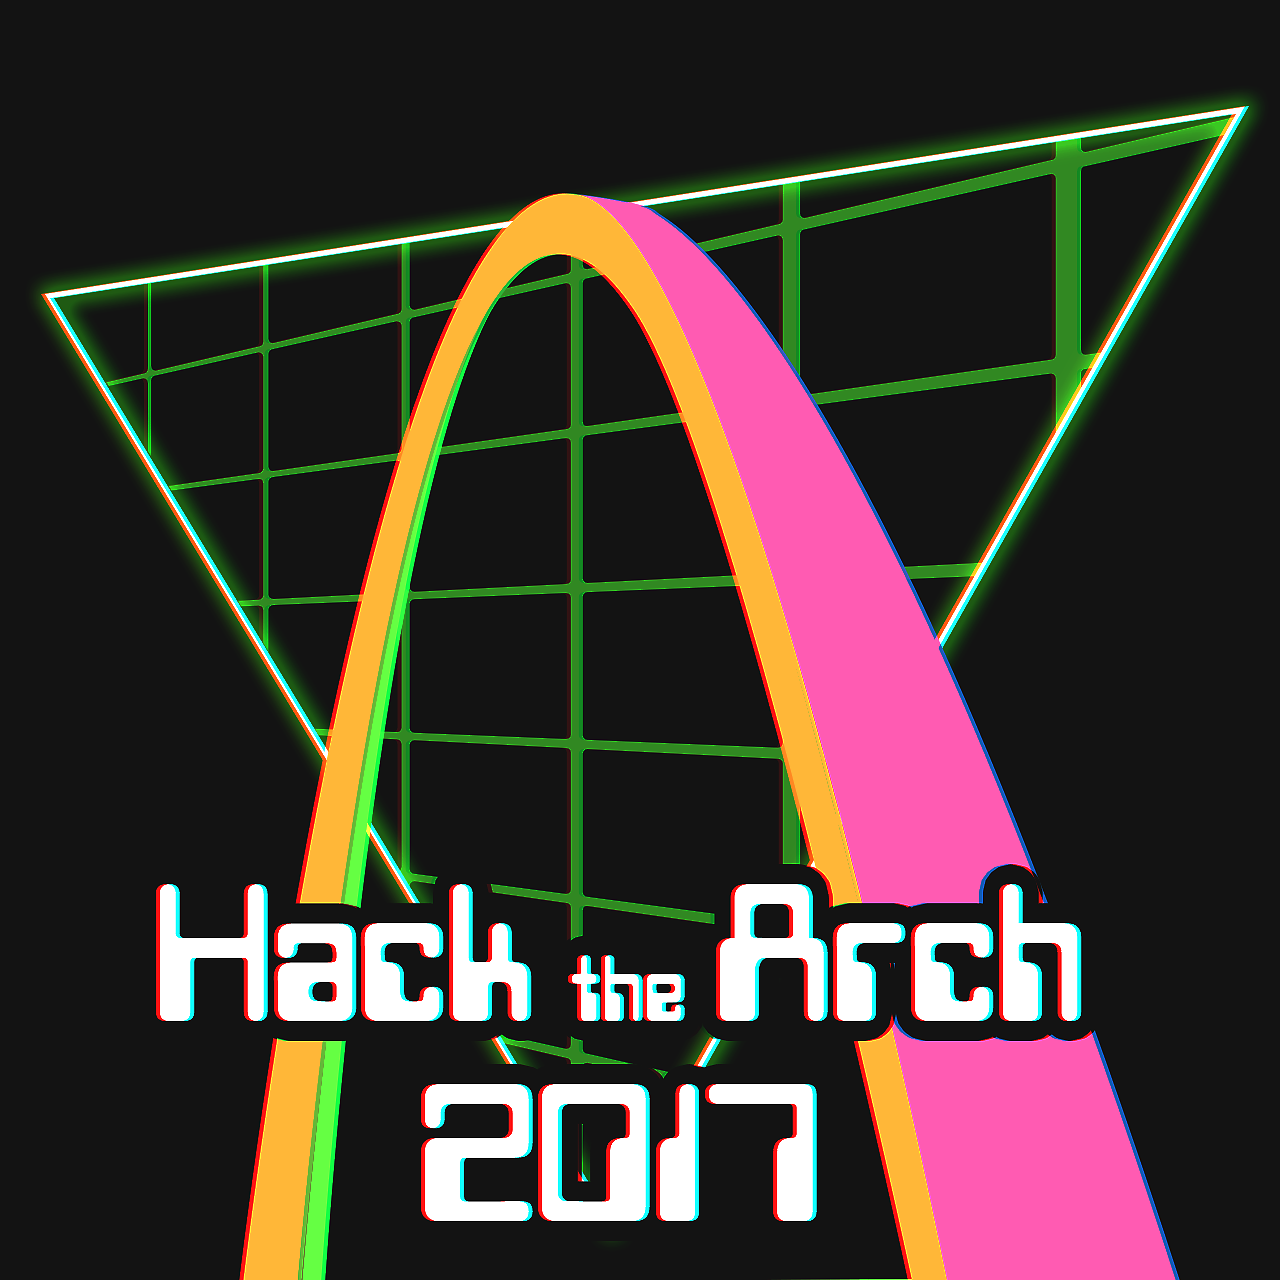 Hack the Arch – CyberUp